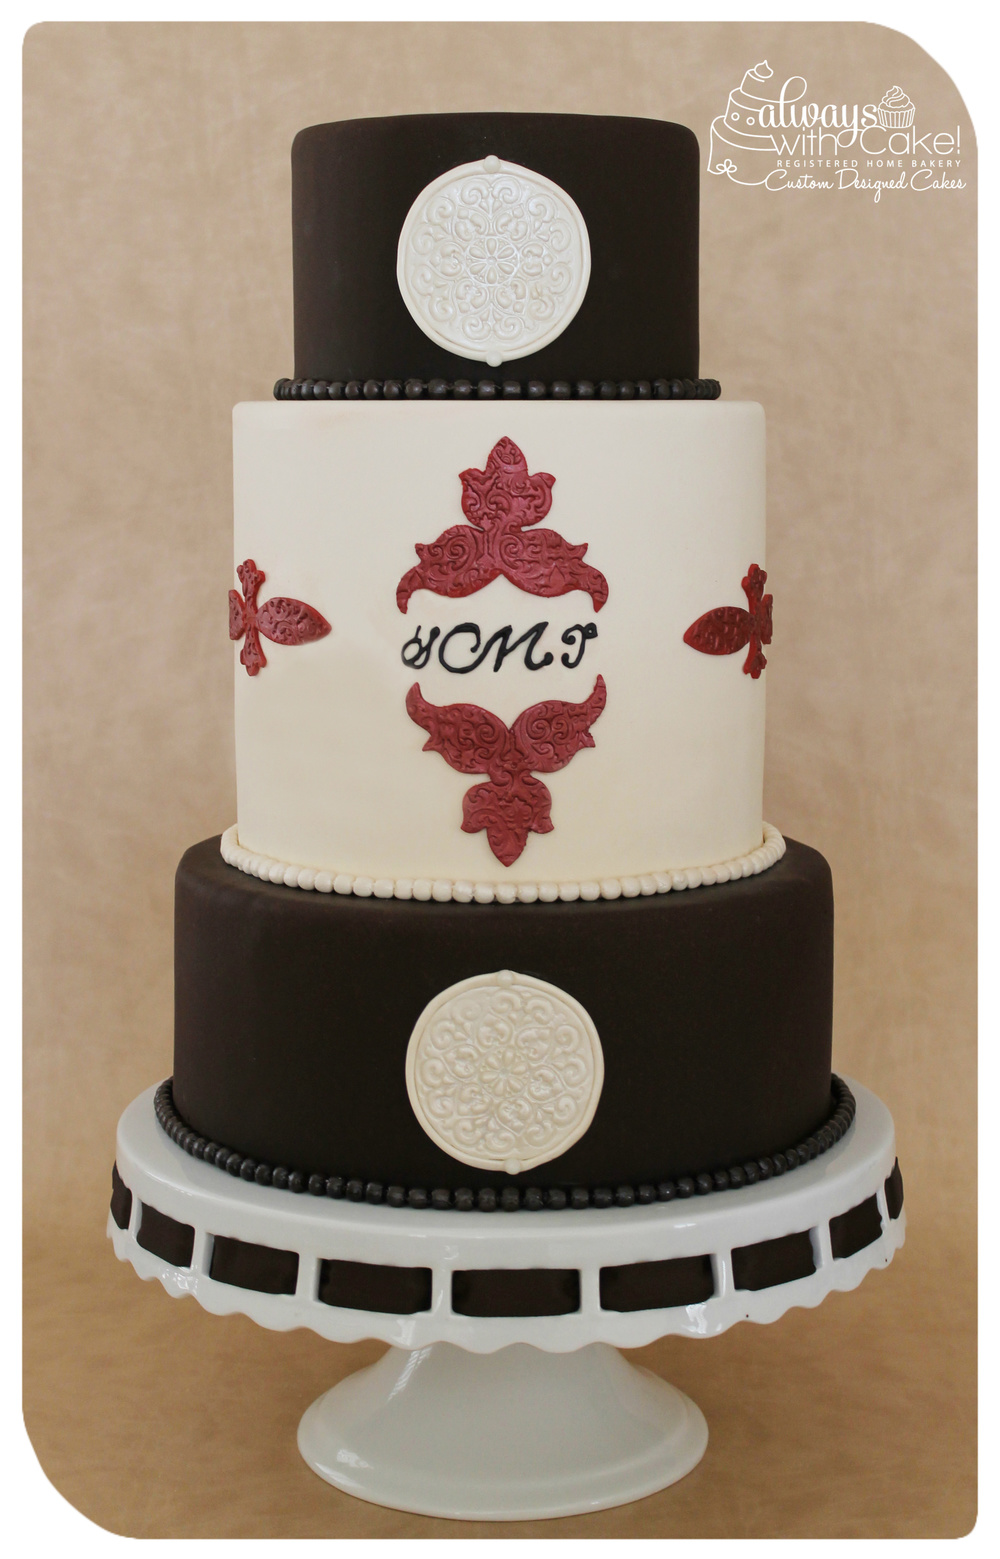 Brown & Ivory Wedding Cake